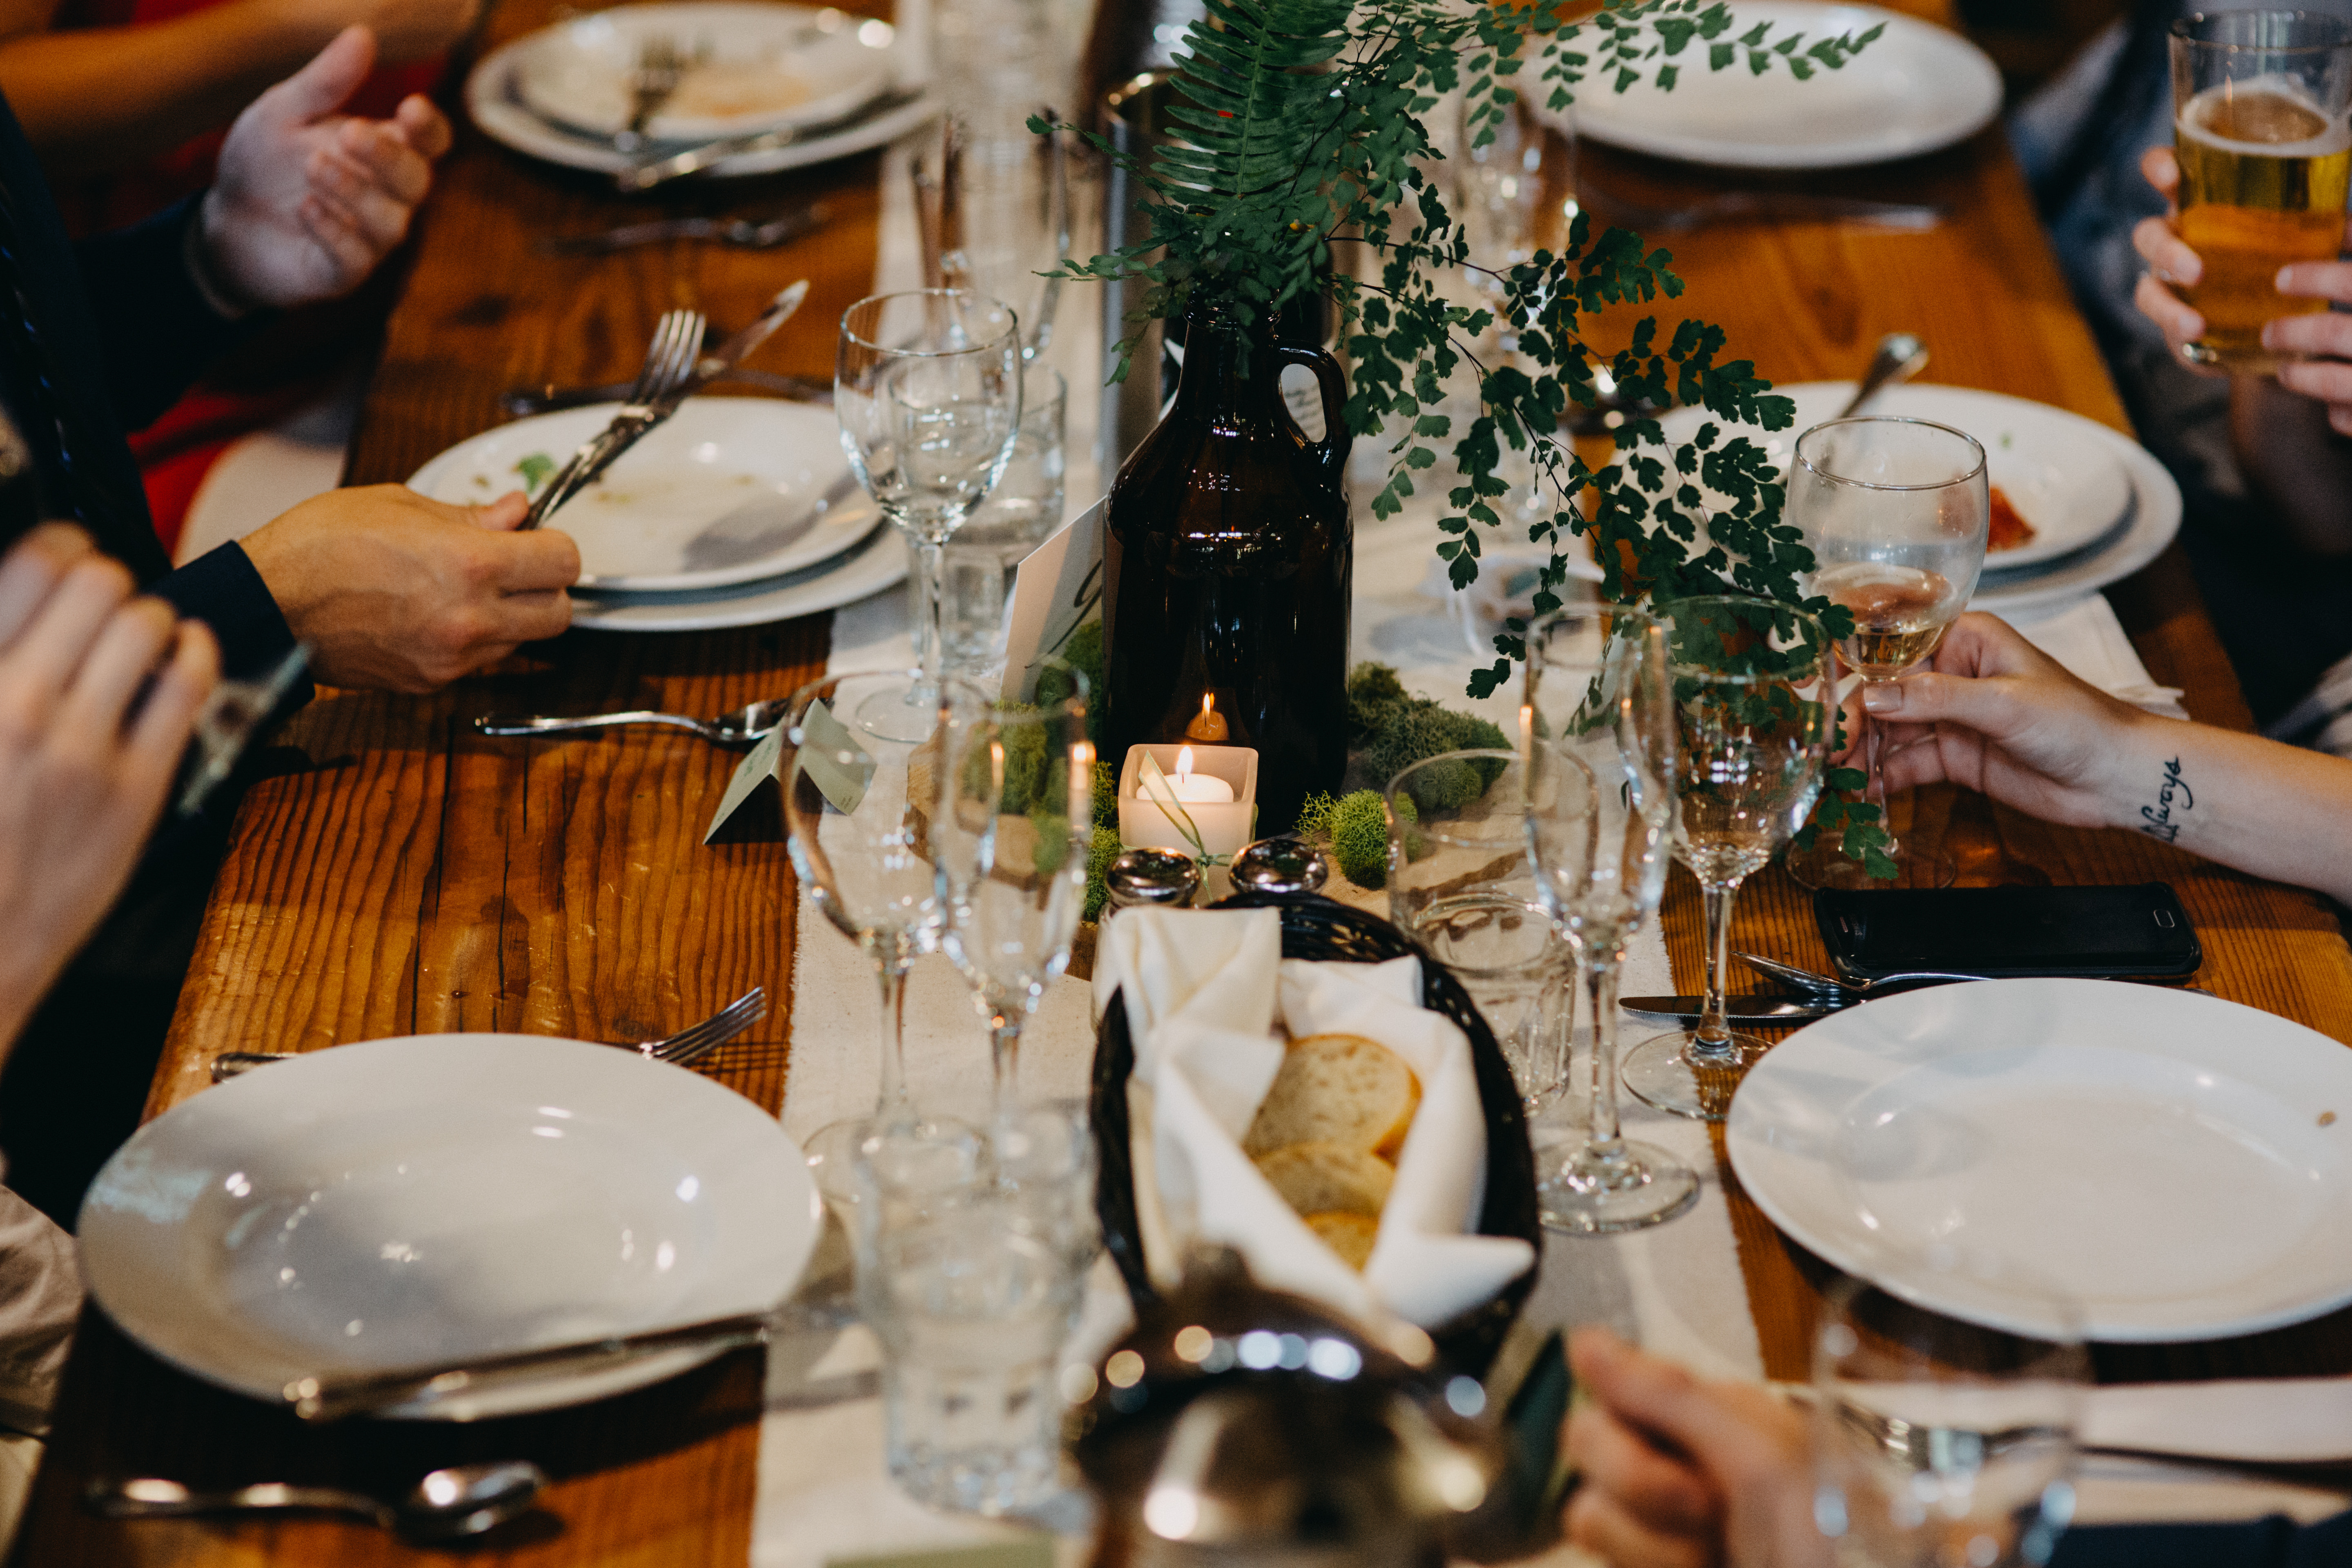 A table at IslandWood set with plates, a candle, a vase with a fern in it, and a basket of bread. Hands are visible on either side of the table, picking up silverware and wine glasses at IslandWood, an Outdoor Wedding Venue